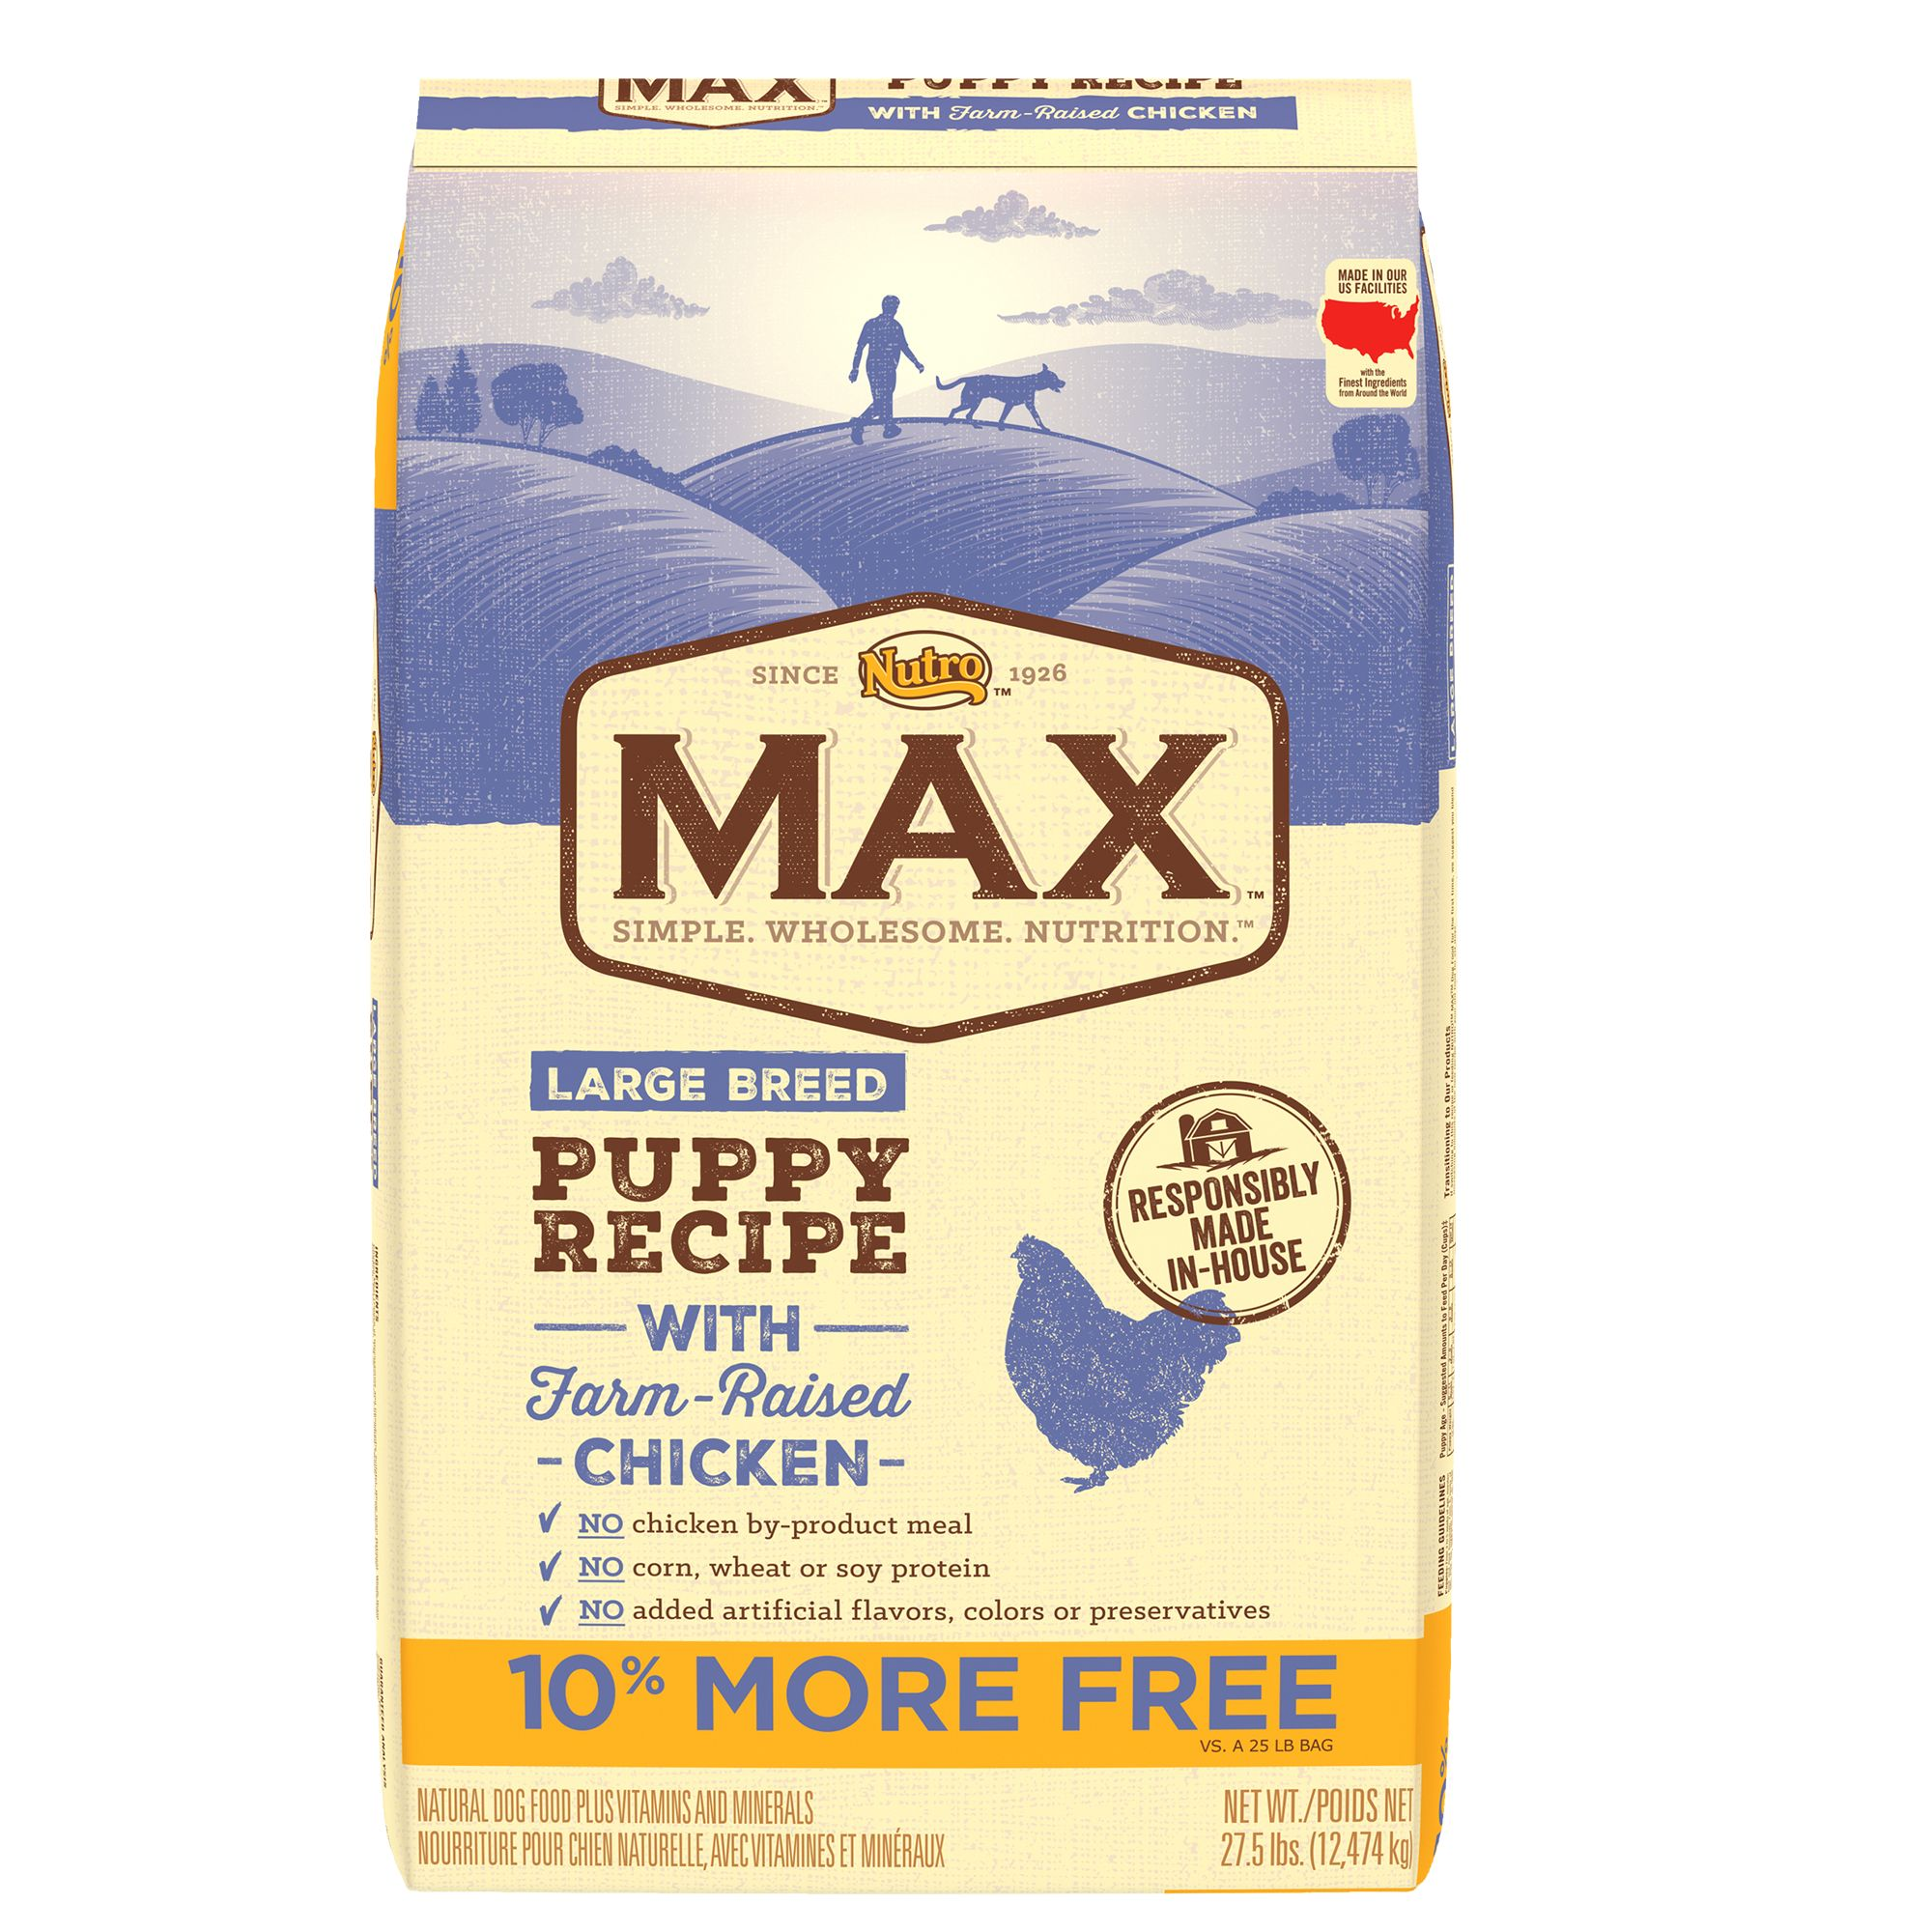 Nutroreg Maxreg Large Breed Puppy Food  Natural Chicken size 27.5 Lb Bonus Bag